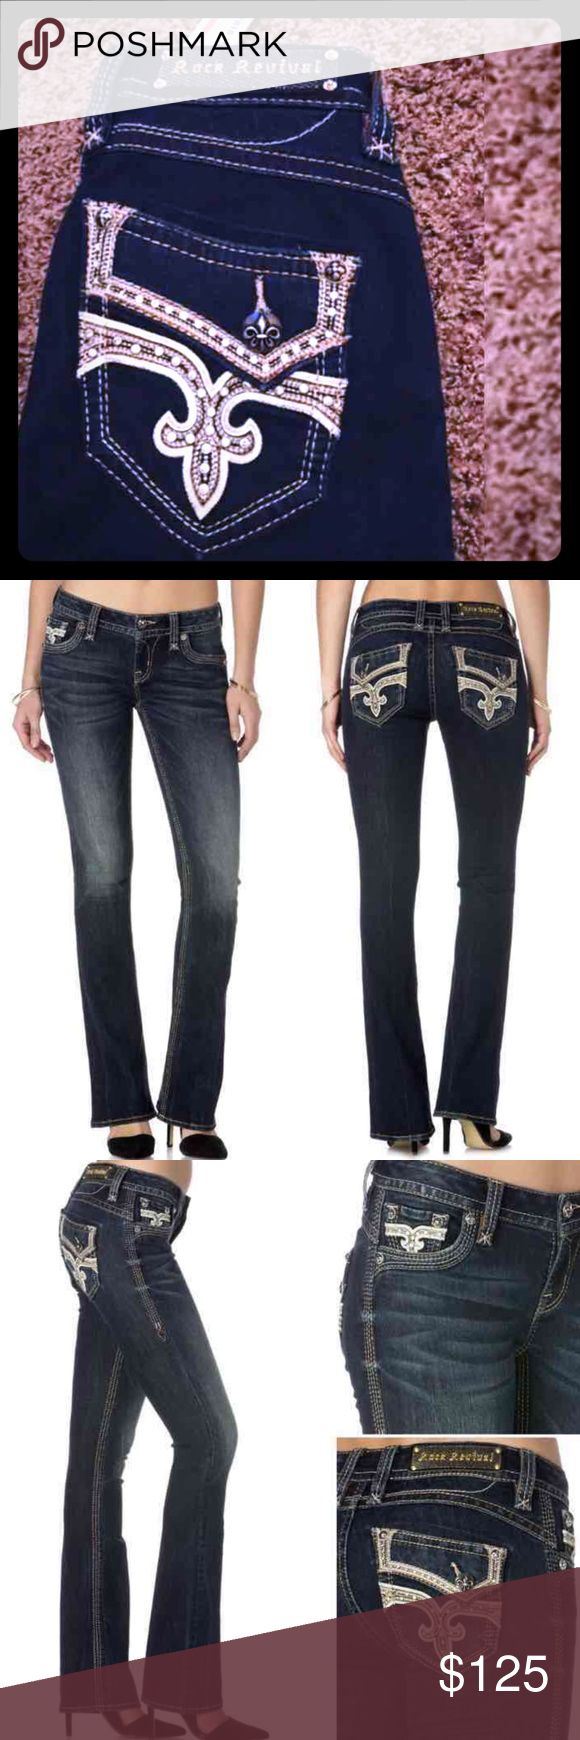 """⚡NWT Rock Revival BARBY Low-Rise Boot Cut Jean⚡ ⚡️1 DAY SALE⚡️= Price Firm 🚫NO OFFERS ACCEPTED🚫 Items will be shipped out Same or Next Day. 💯% AUTHENTIC NWT Rock Revival """"BARBY B400"""" Low-Rise Boot Cut Jean  Style #: PR1050B400 Size: 25 Inseam: 33""""  DETAILS: -Zip fly w/button closure -5 pocket construction -Fading and whiskering at thighs -Rhinestone and embroidered details  🎉Available thru Ⓜ️=$100 FREE SHIP💋 👍REASONABLE OFFERS  🚫NO LOW BALLING🚫 Any other questions please ask feel…"""